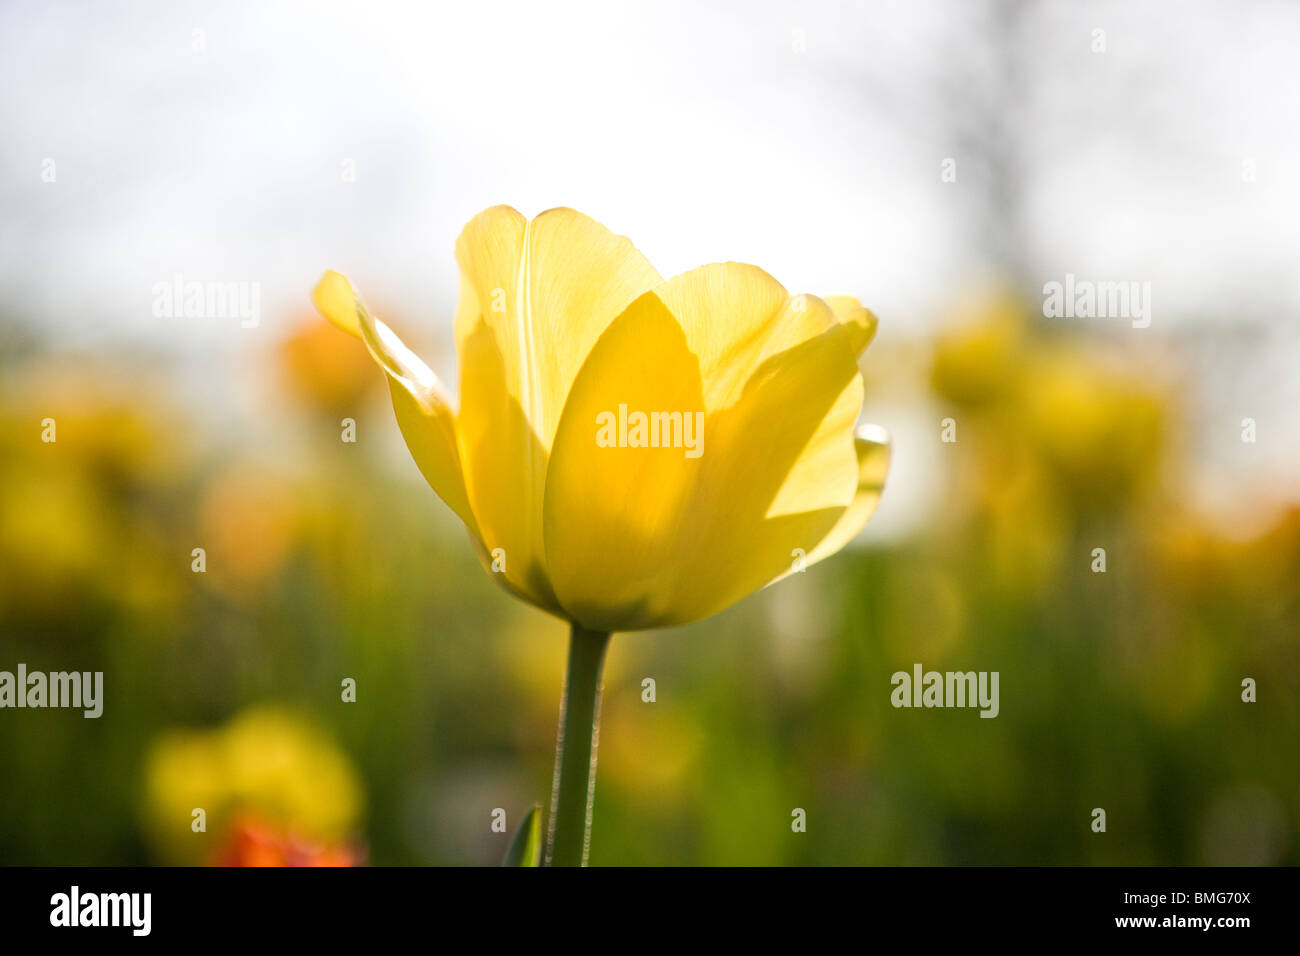 A yellow tulip in full bloom, close up - Stock Image